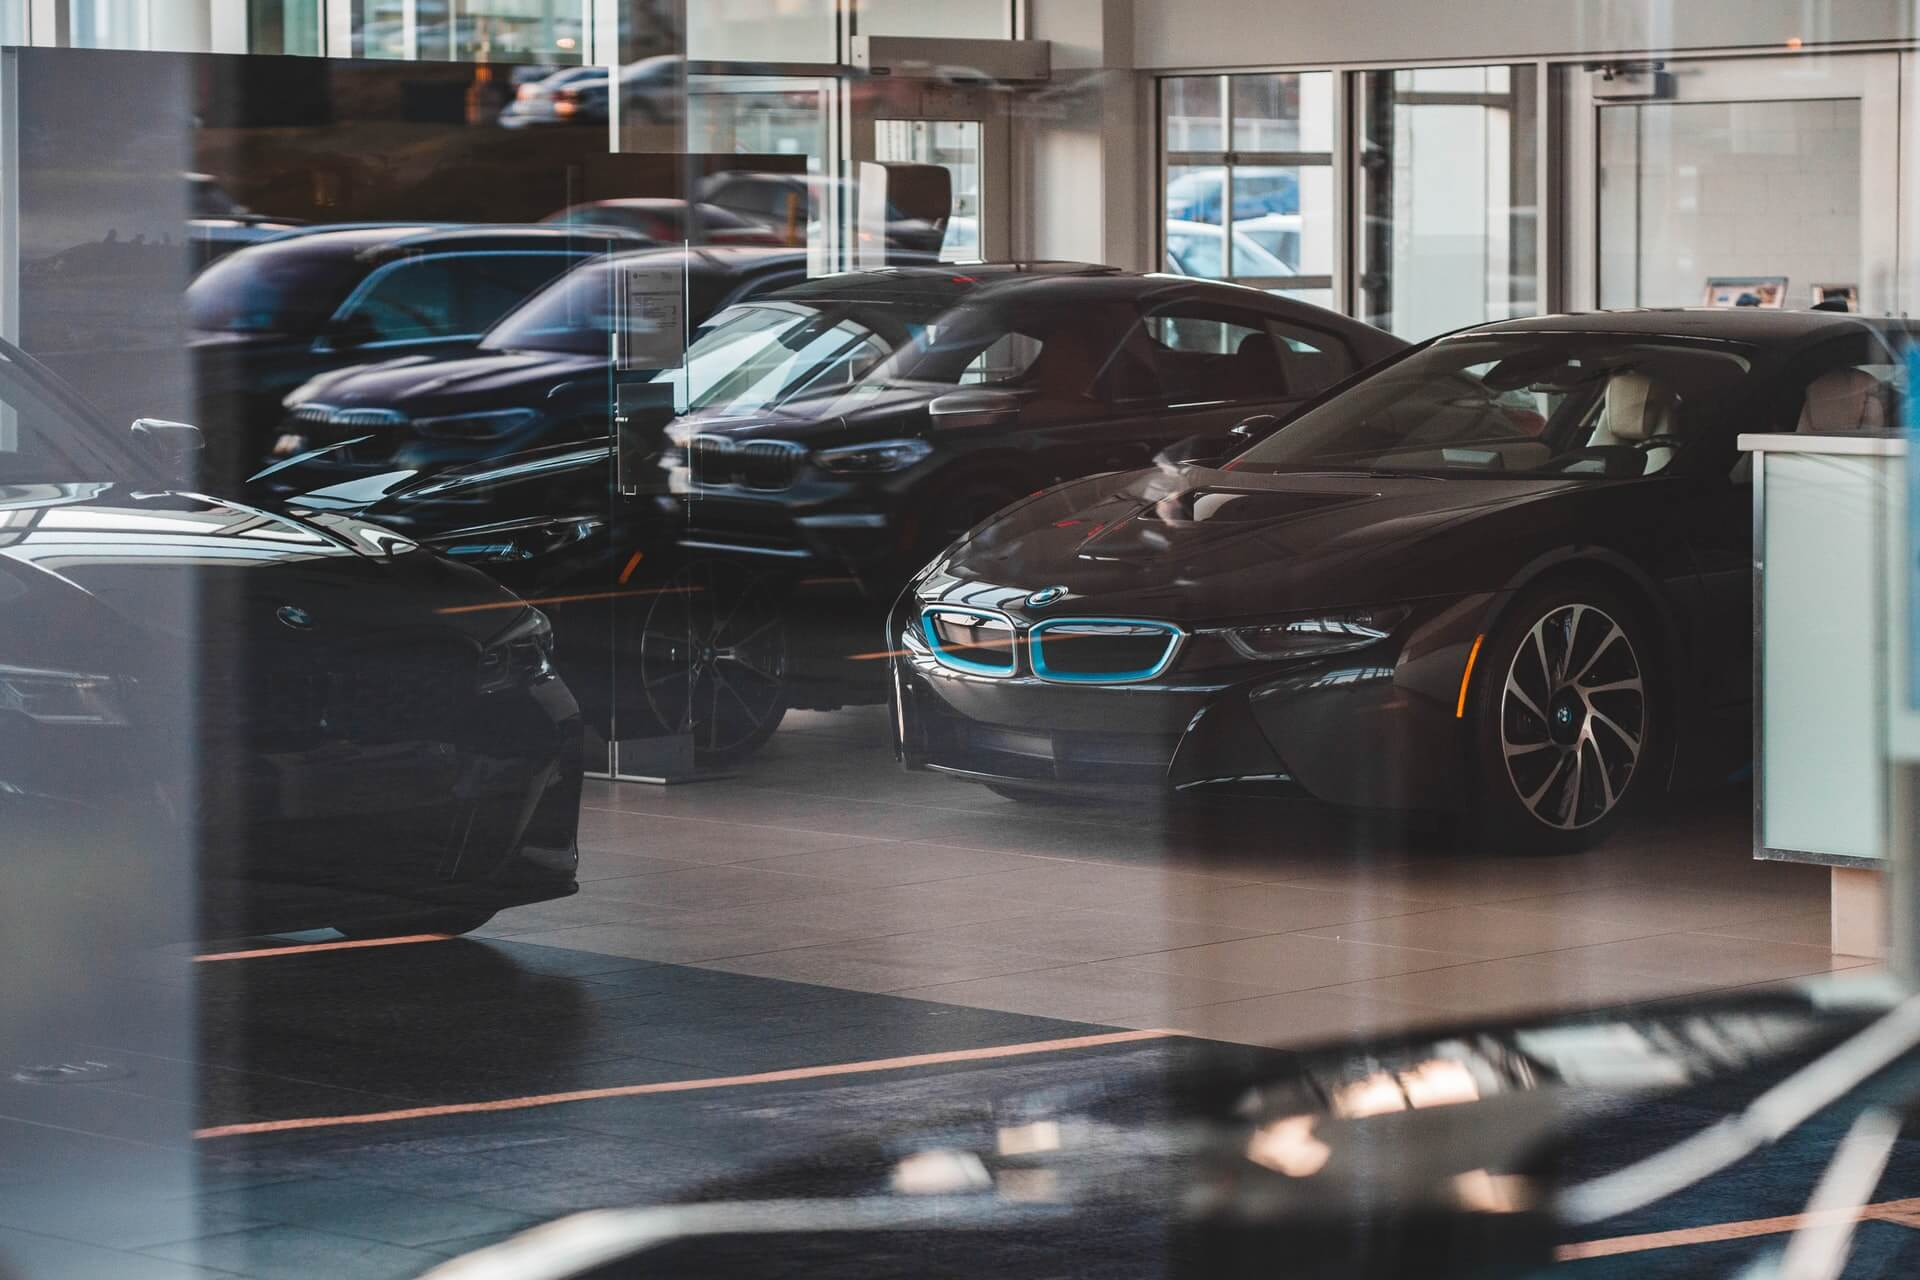 Best 21 sites to buy and sell a car online